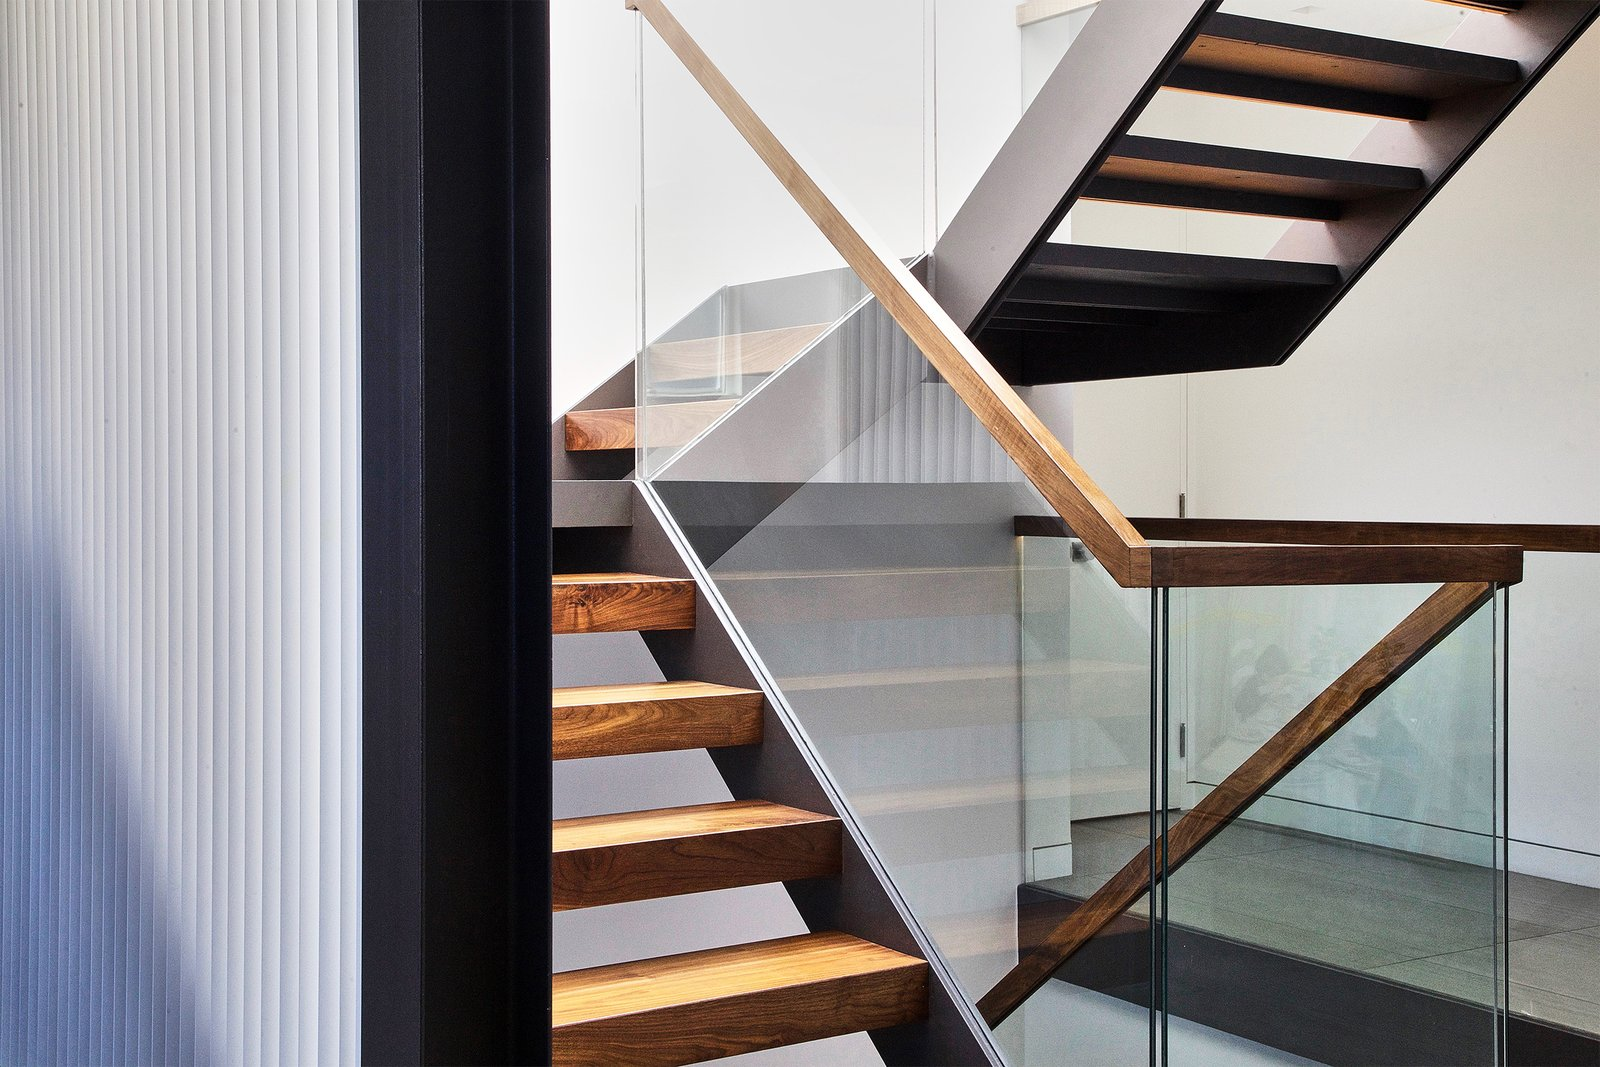 Walnut and Steel stair connecting all floors